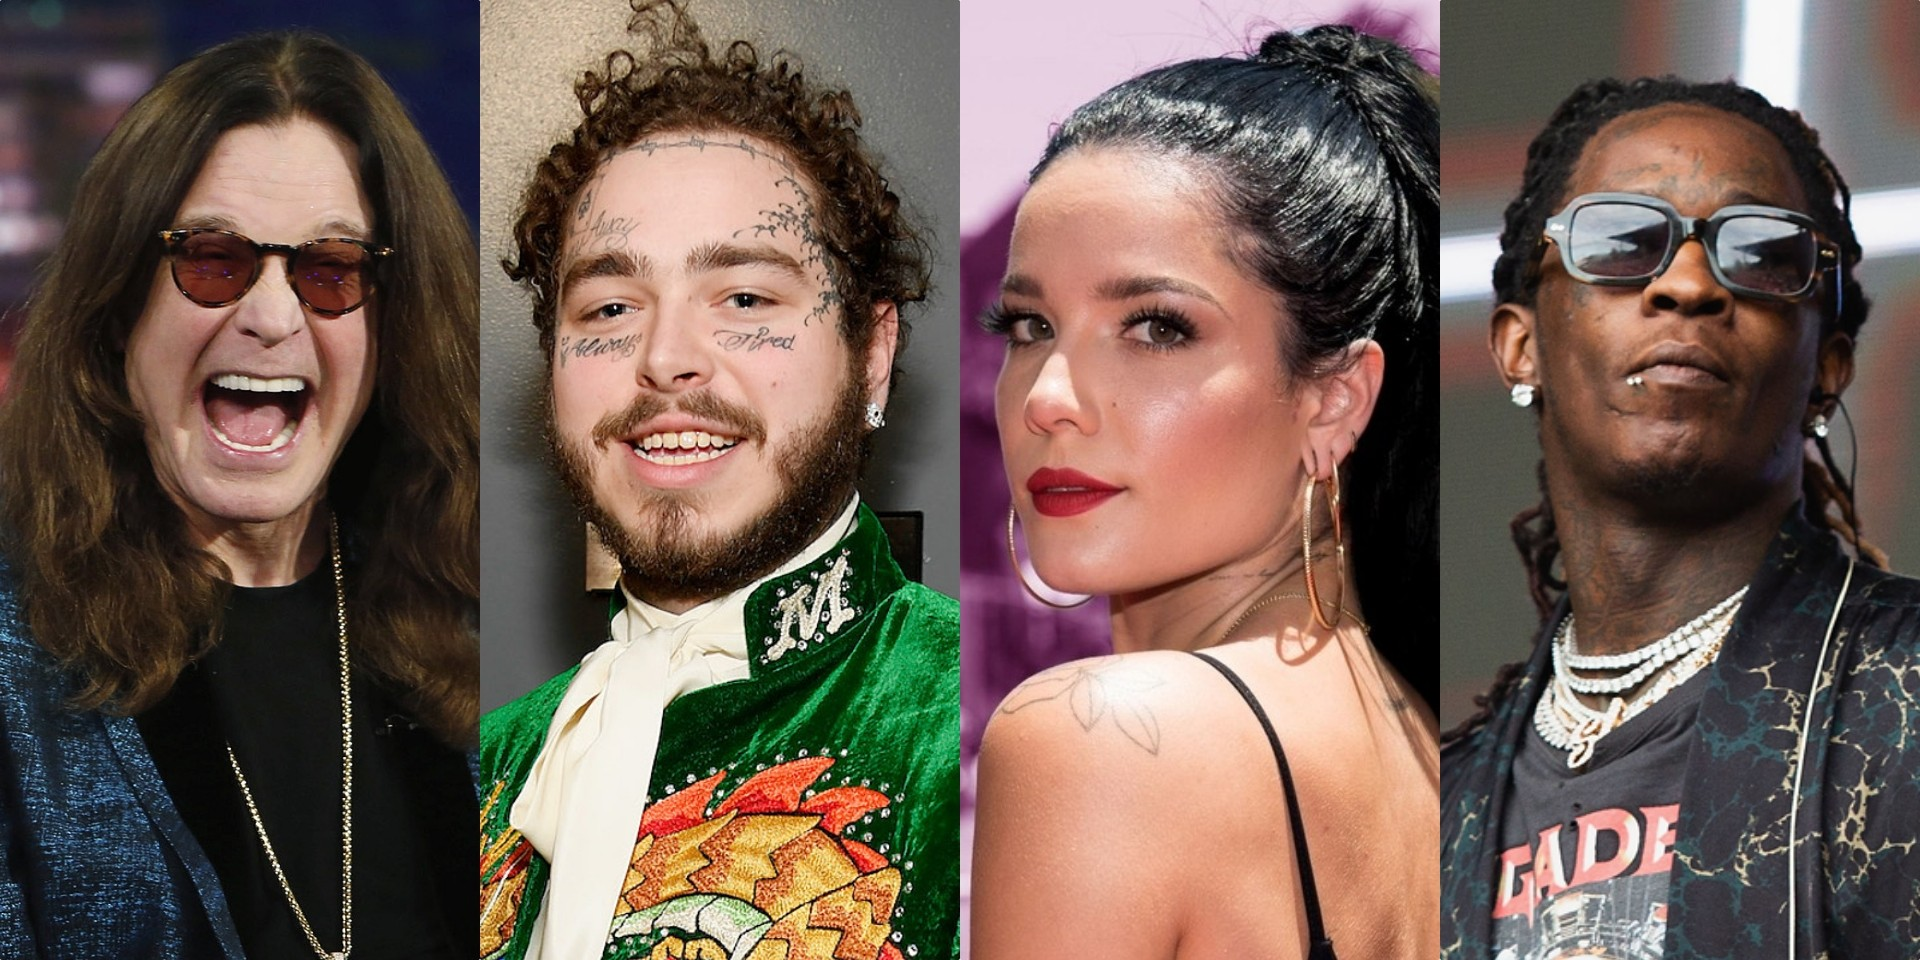 Post Malone shares list of collaborators on upcoming album, appearances by Ozzy Osbourne, Halsey, Young Thug and more confirmed